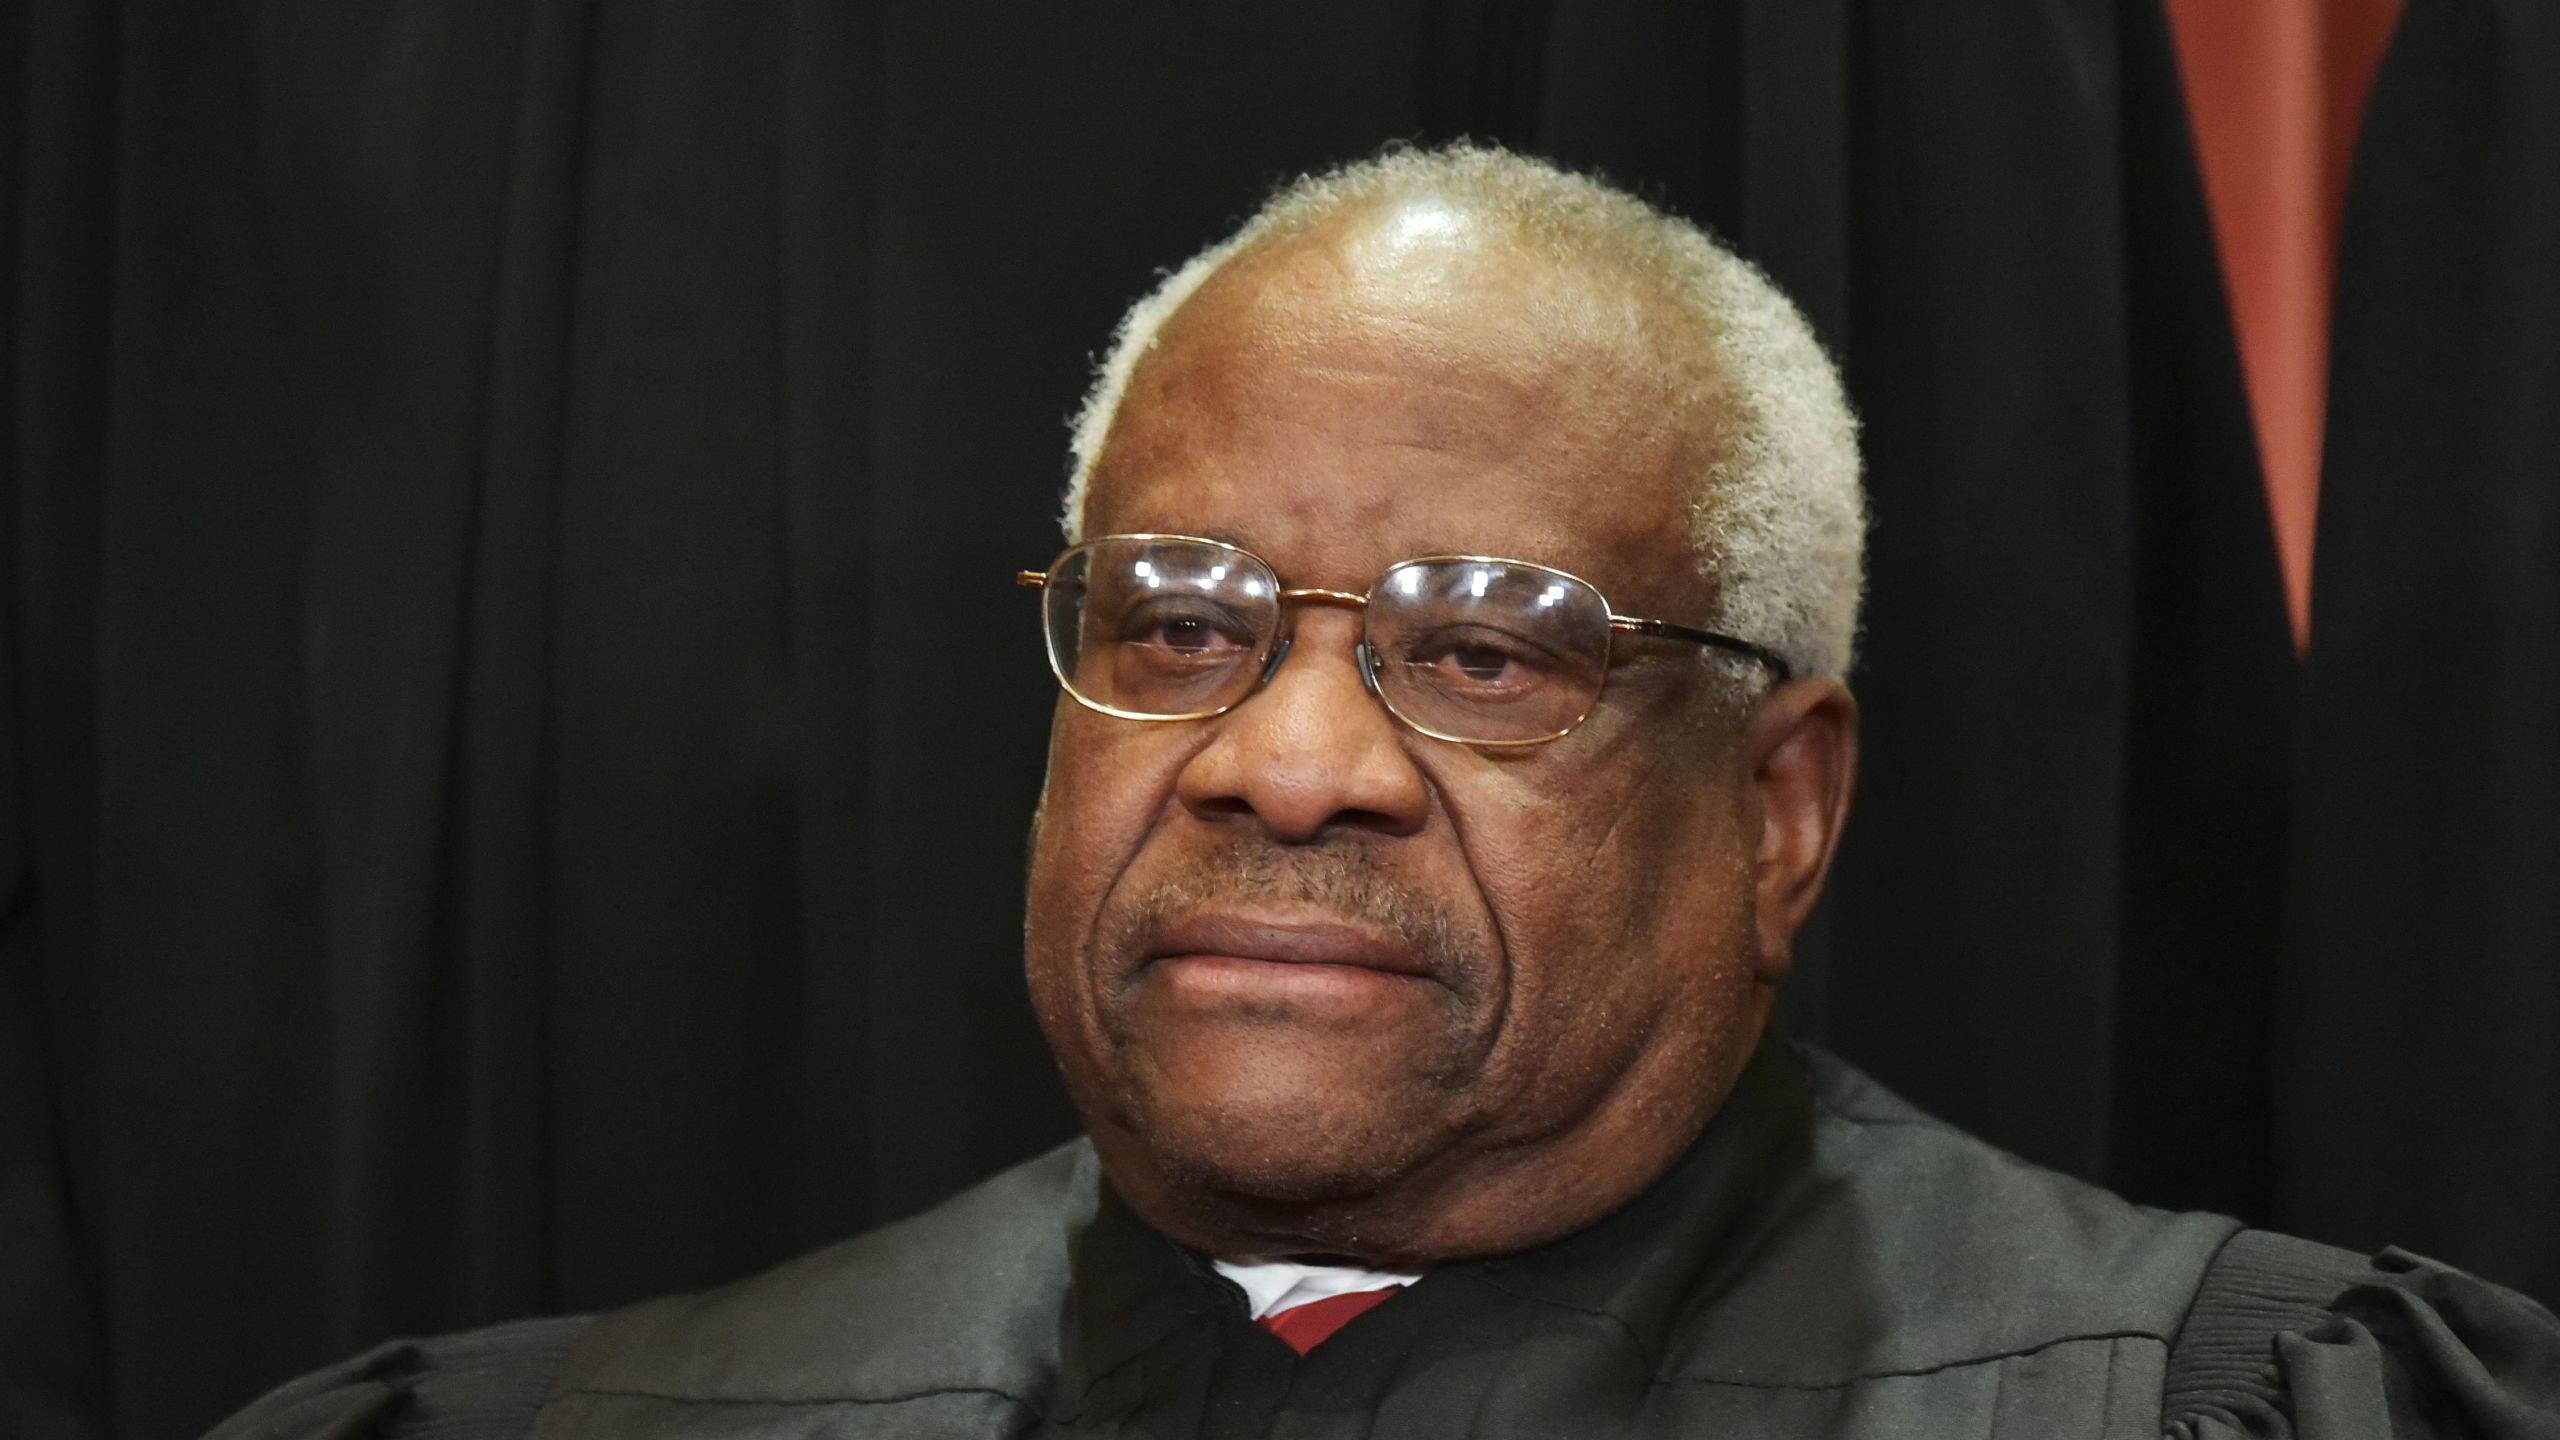 Justice Clarence Thomas poses for the official group photo at the Supreme Court in Washington, DC on November 30, 2018. (Credit: MANDEL NGAN/AFP/Getty Images)